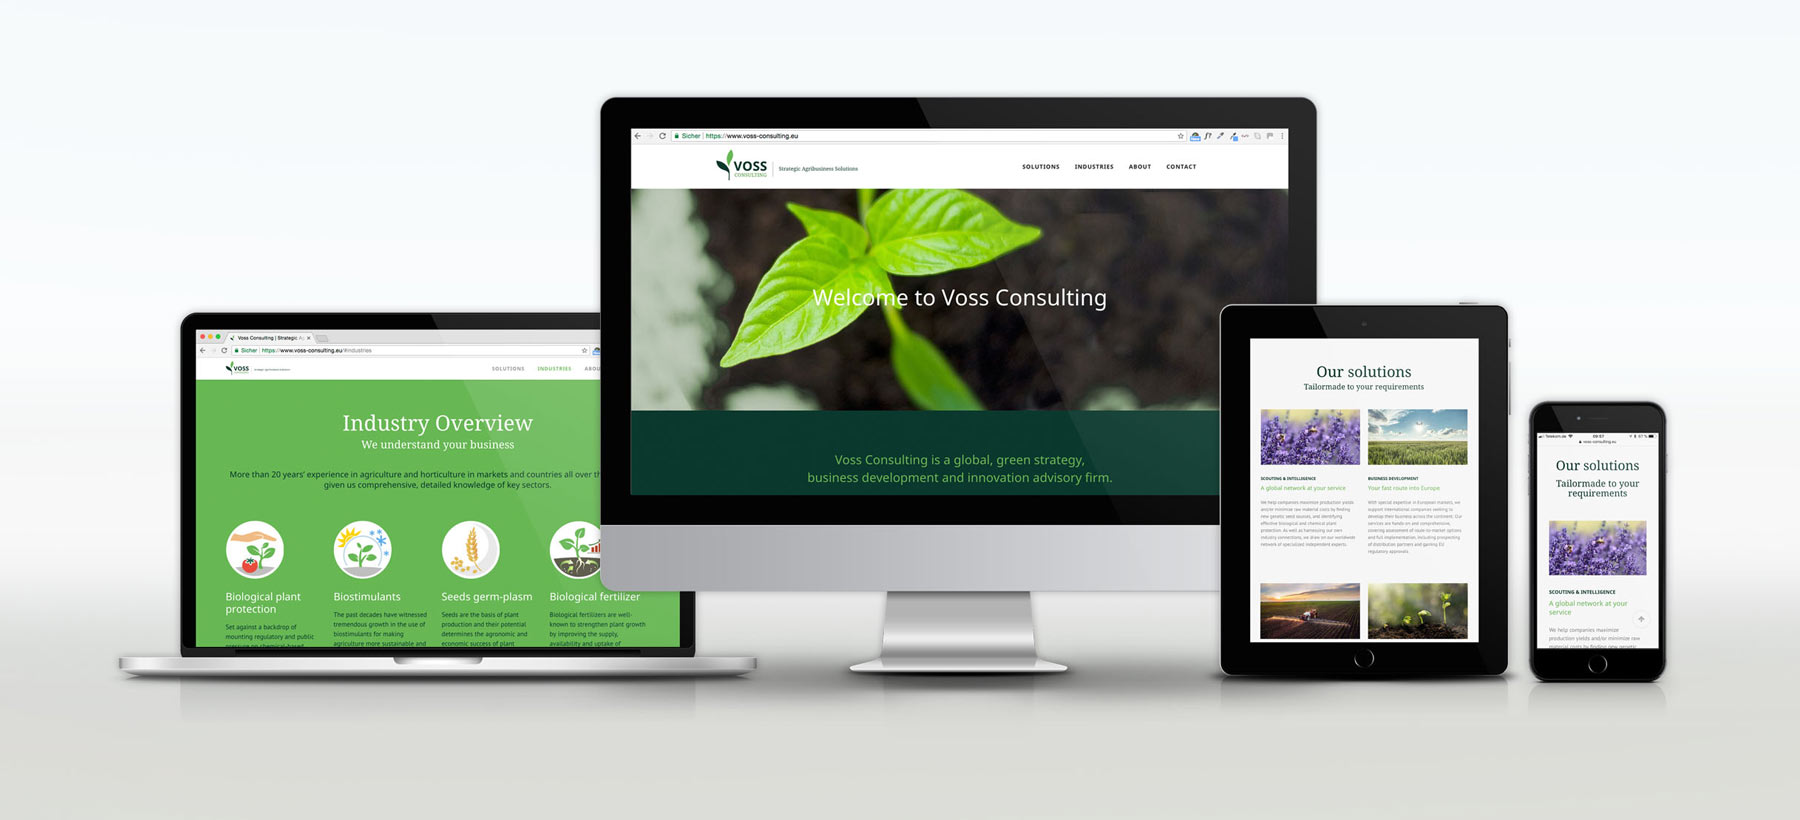 Voss Consulting Website Mockup